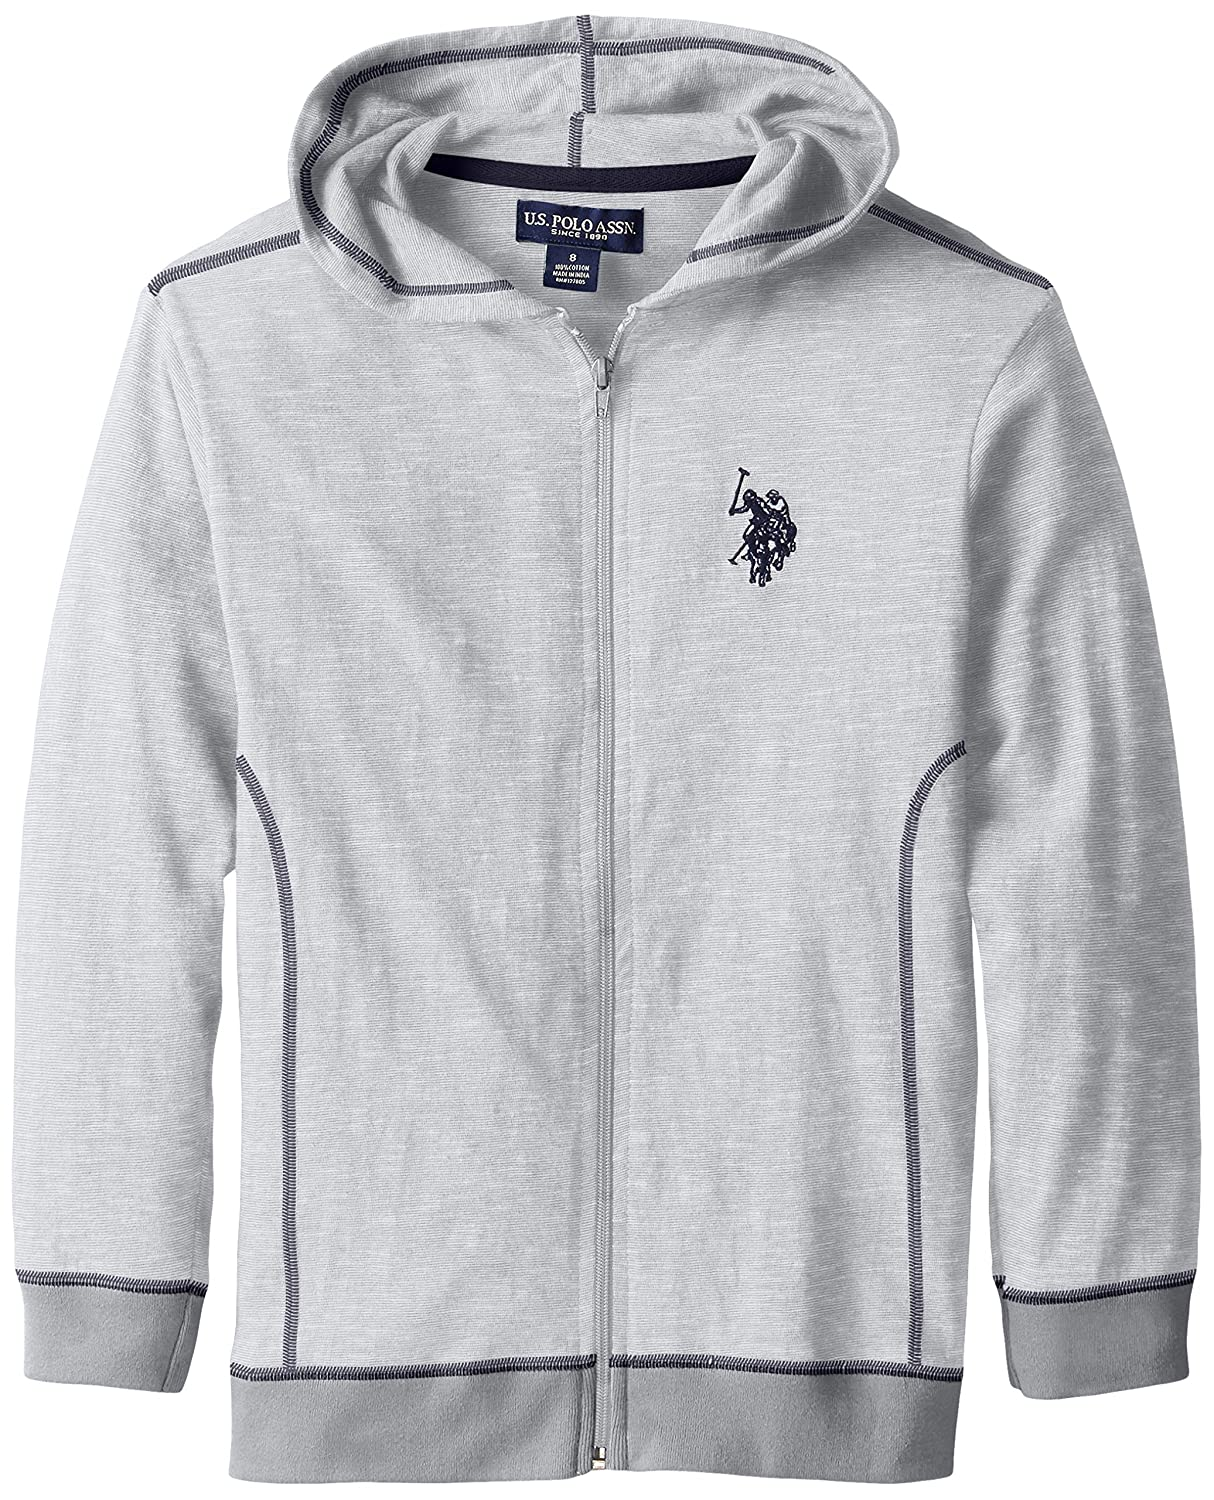 U.S. Polo Assn. Boys' Space Dyed Cotton Jersey Zip Up Hoodie